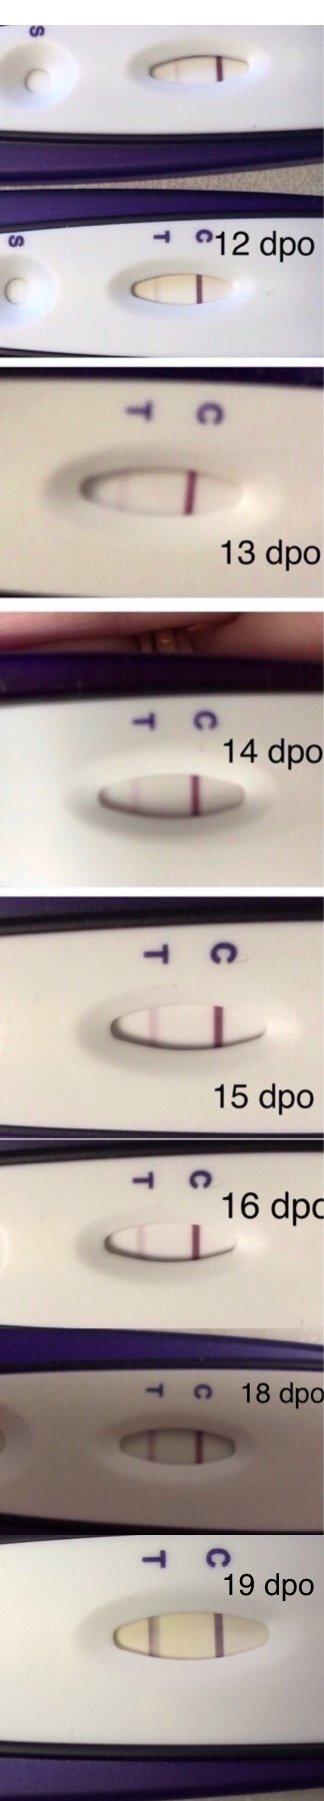 Low Beta 15dpo